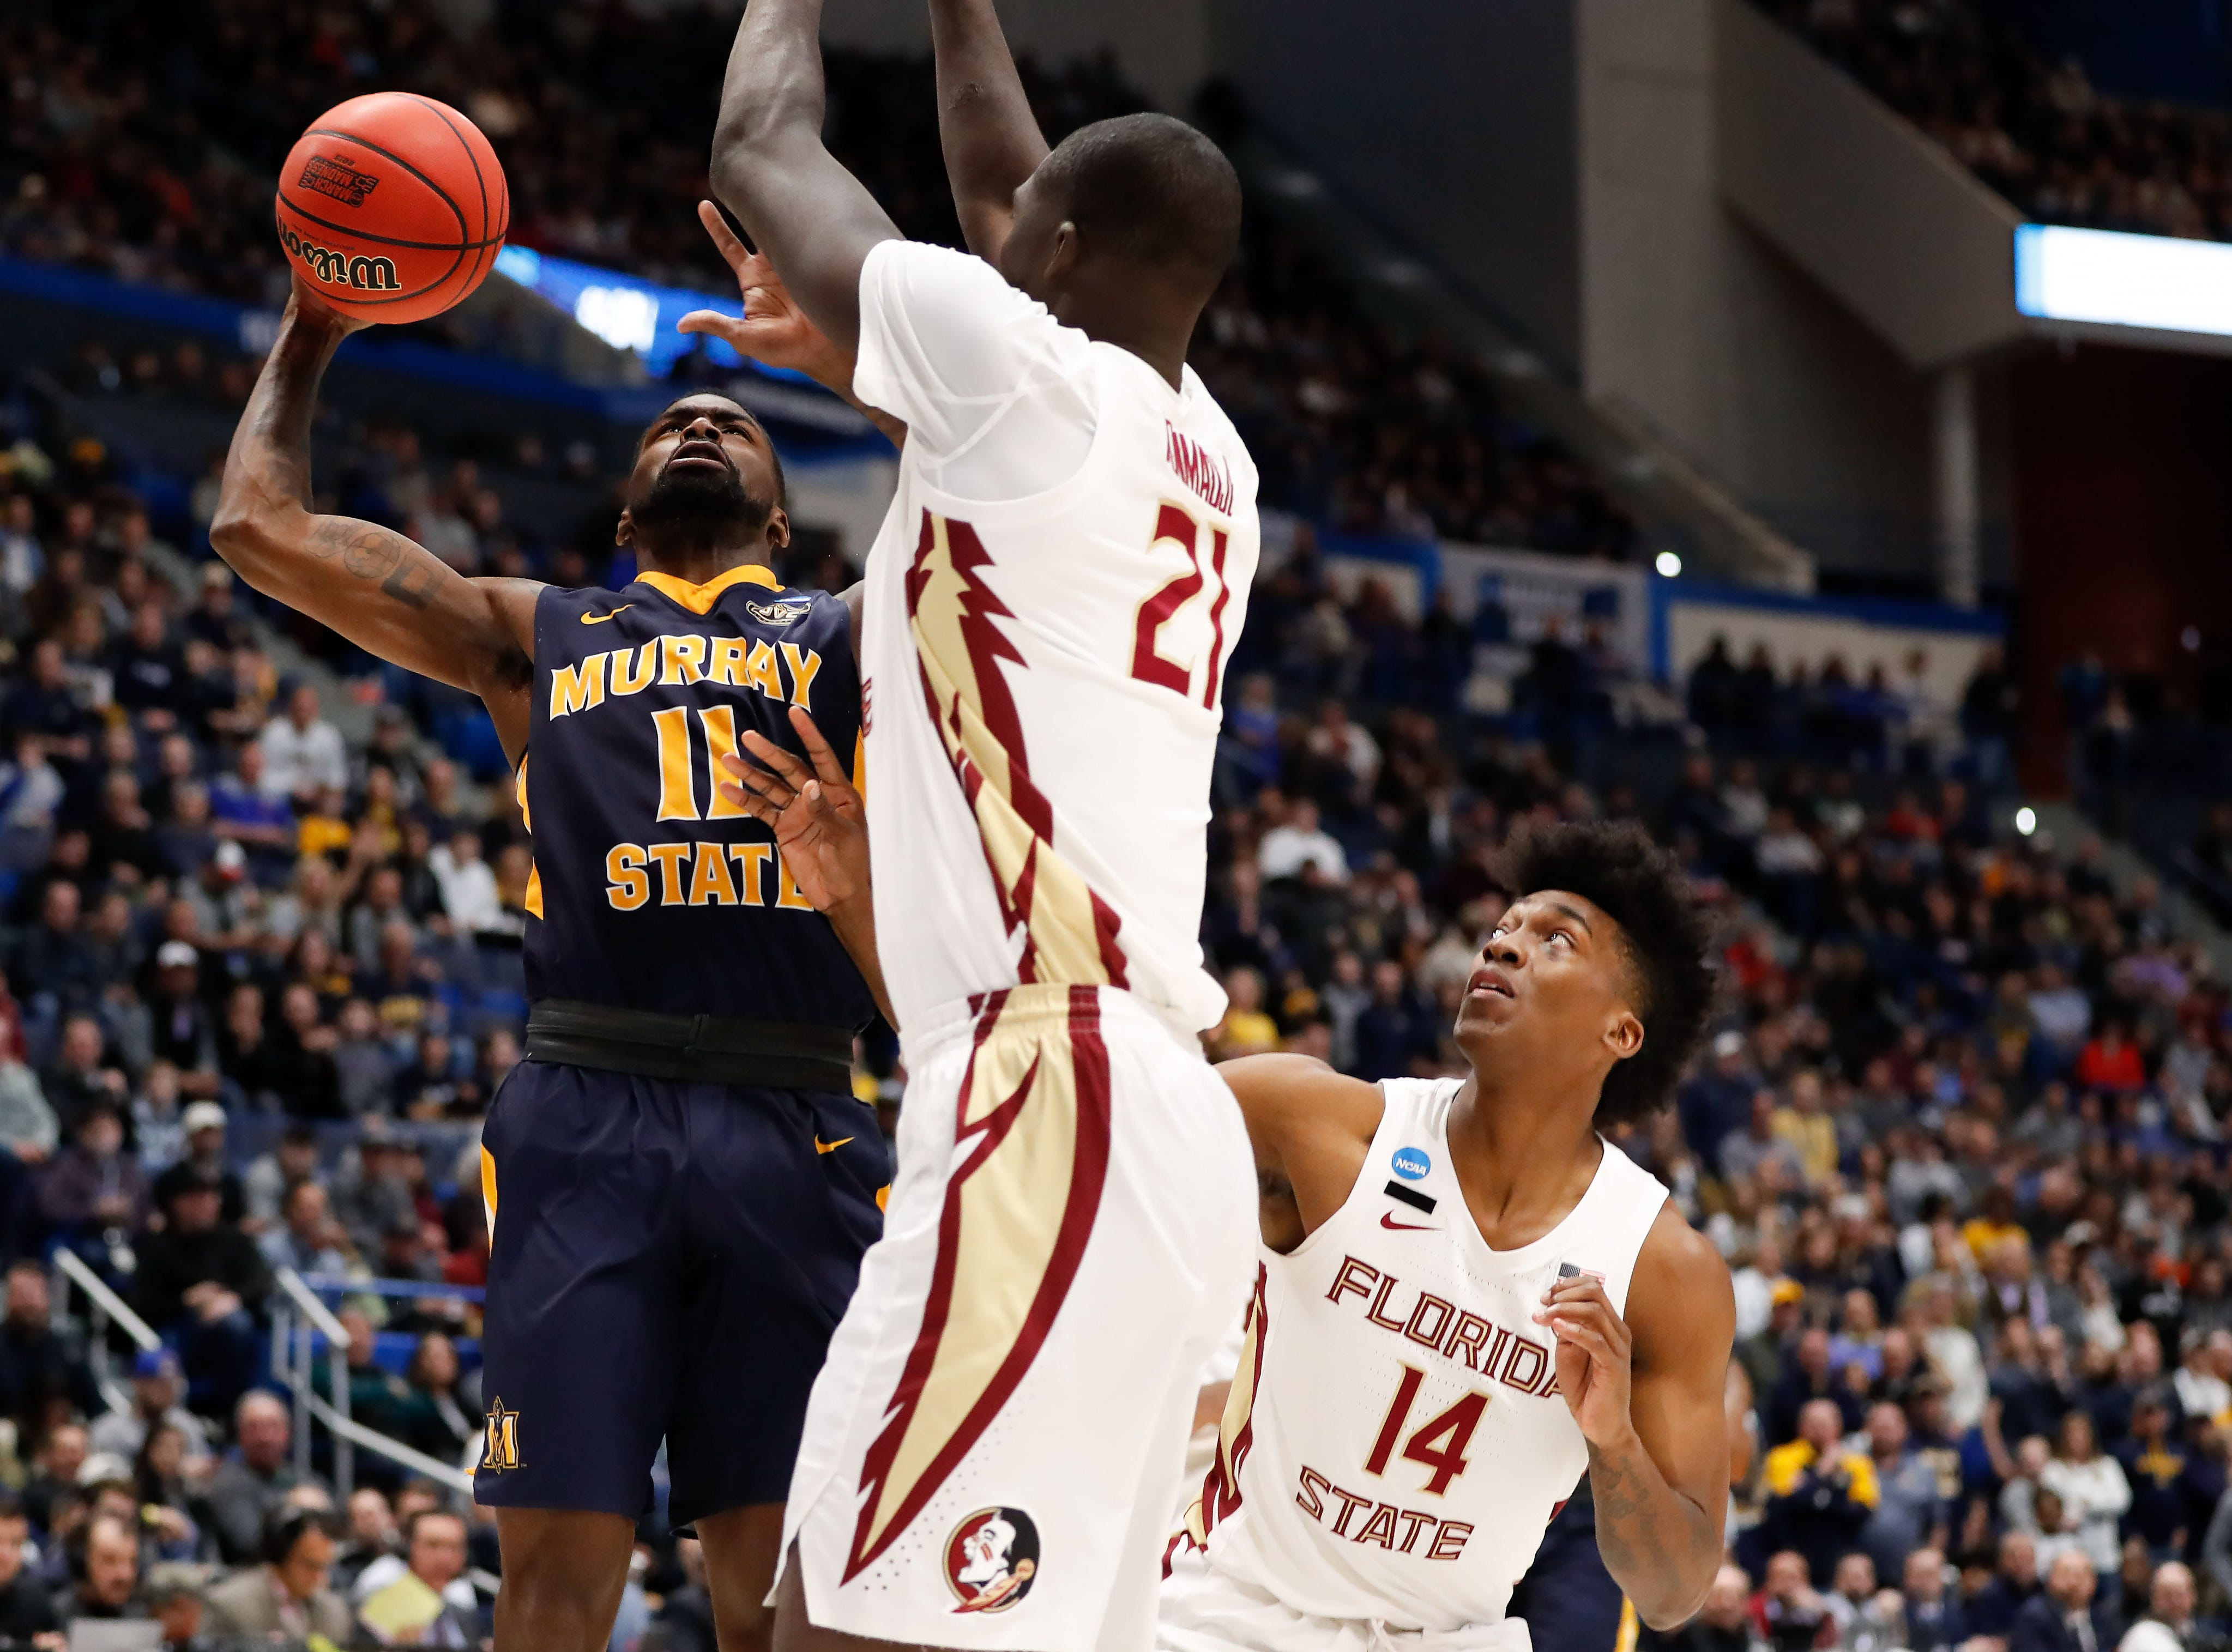 Mar 23, 2019; Hartford, CT, USA; Murray State Racers guard Shaq Buchanan (11) attempts a layup against Florida State Seminoles center Christ Koumadje (21) and guard Terance Mann (14) during the first half of a game in the second round of the 2019 NCAA Tournament at XL Center. Mandatory Credit: David Butler II-USA TODAY Sports